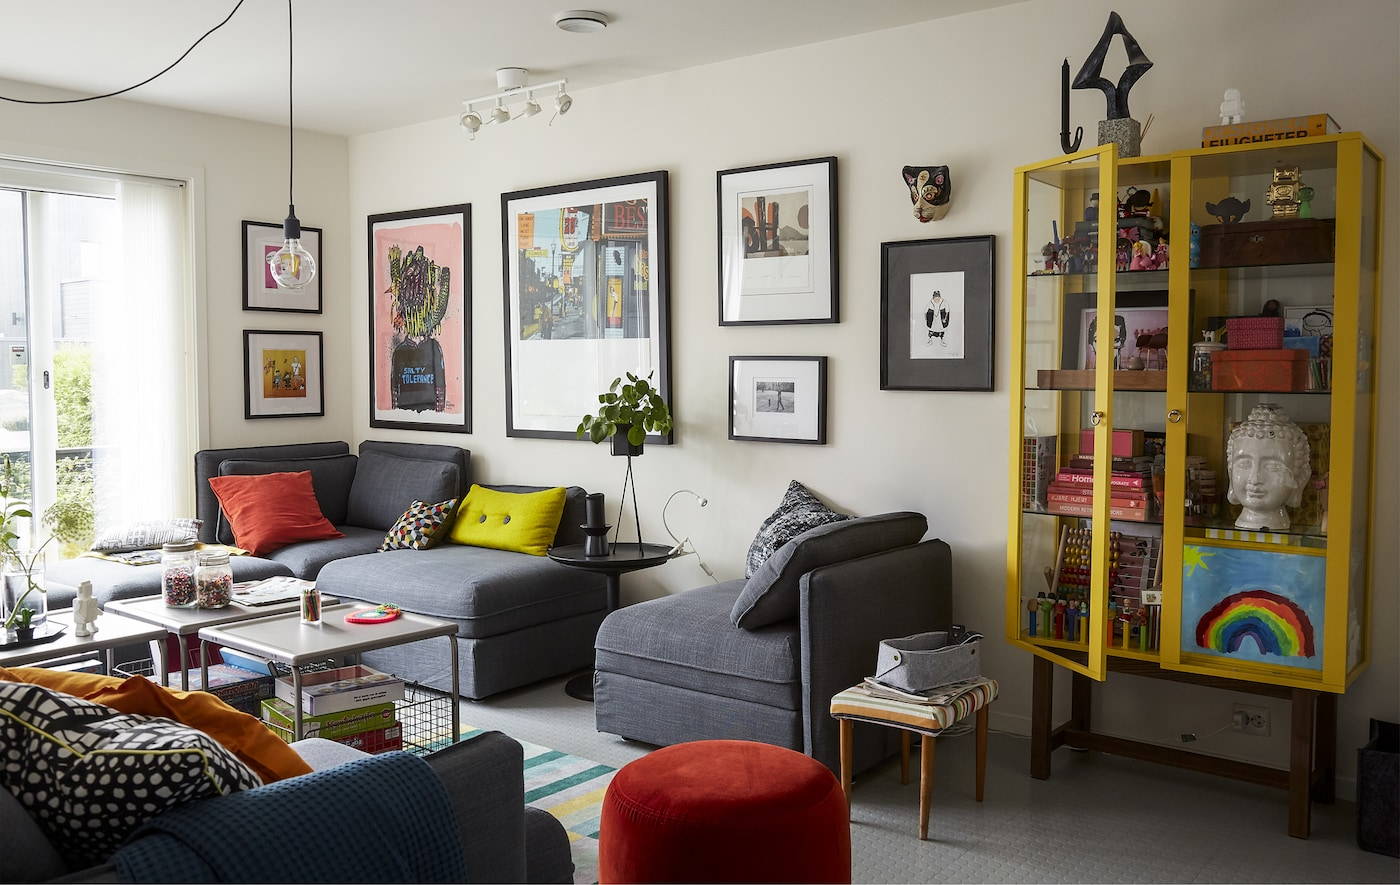 A living room with grey modular sofa and colorful cushions.